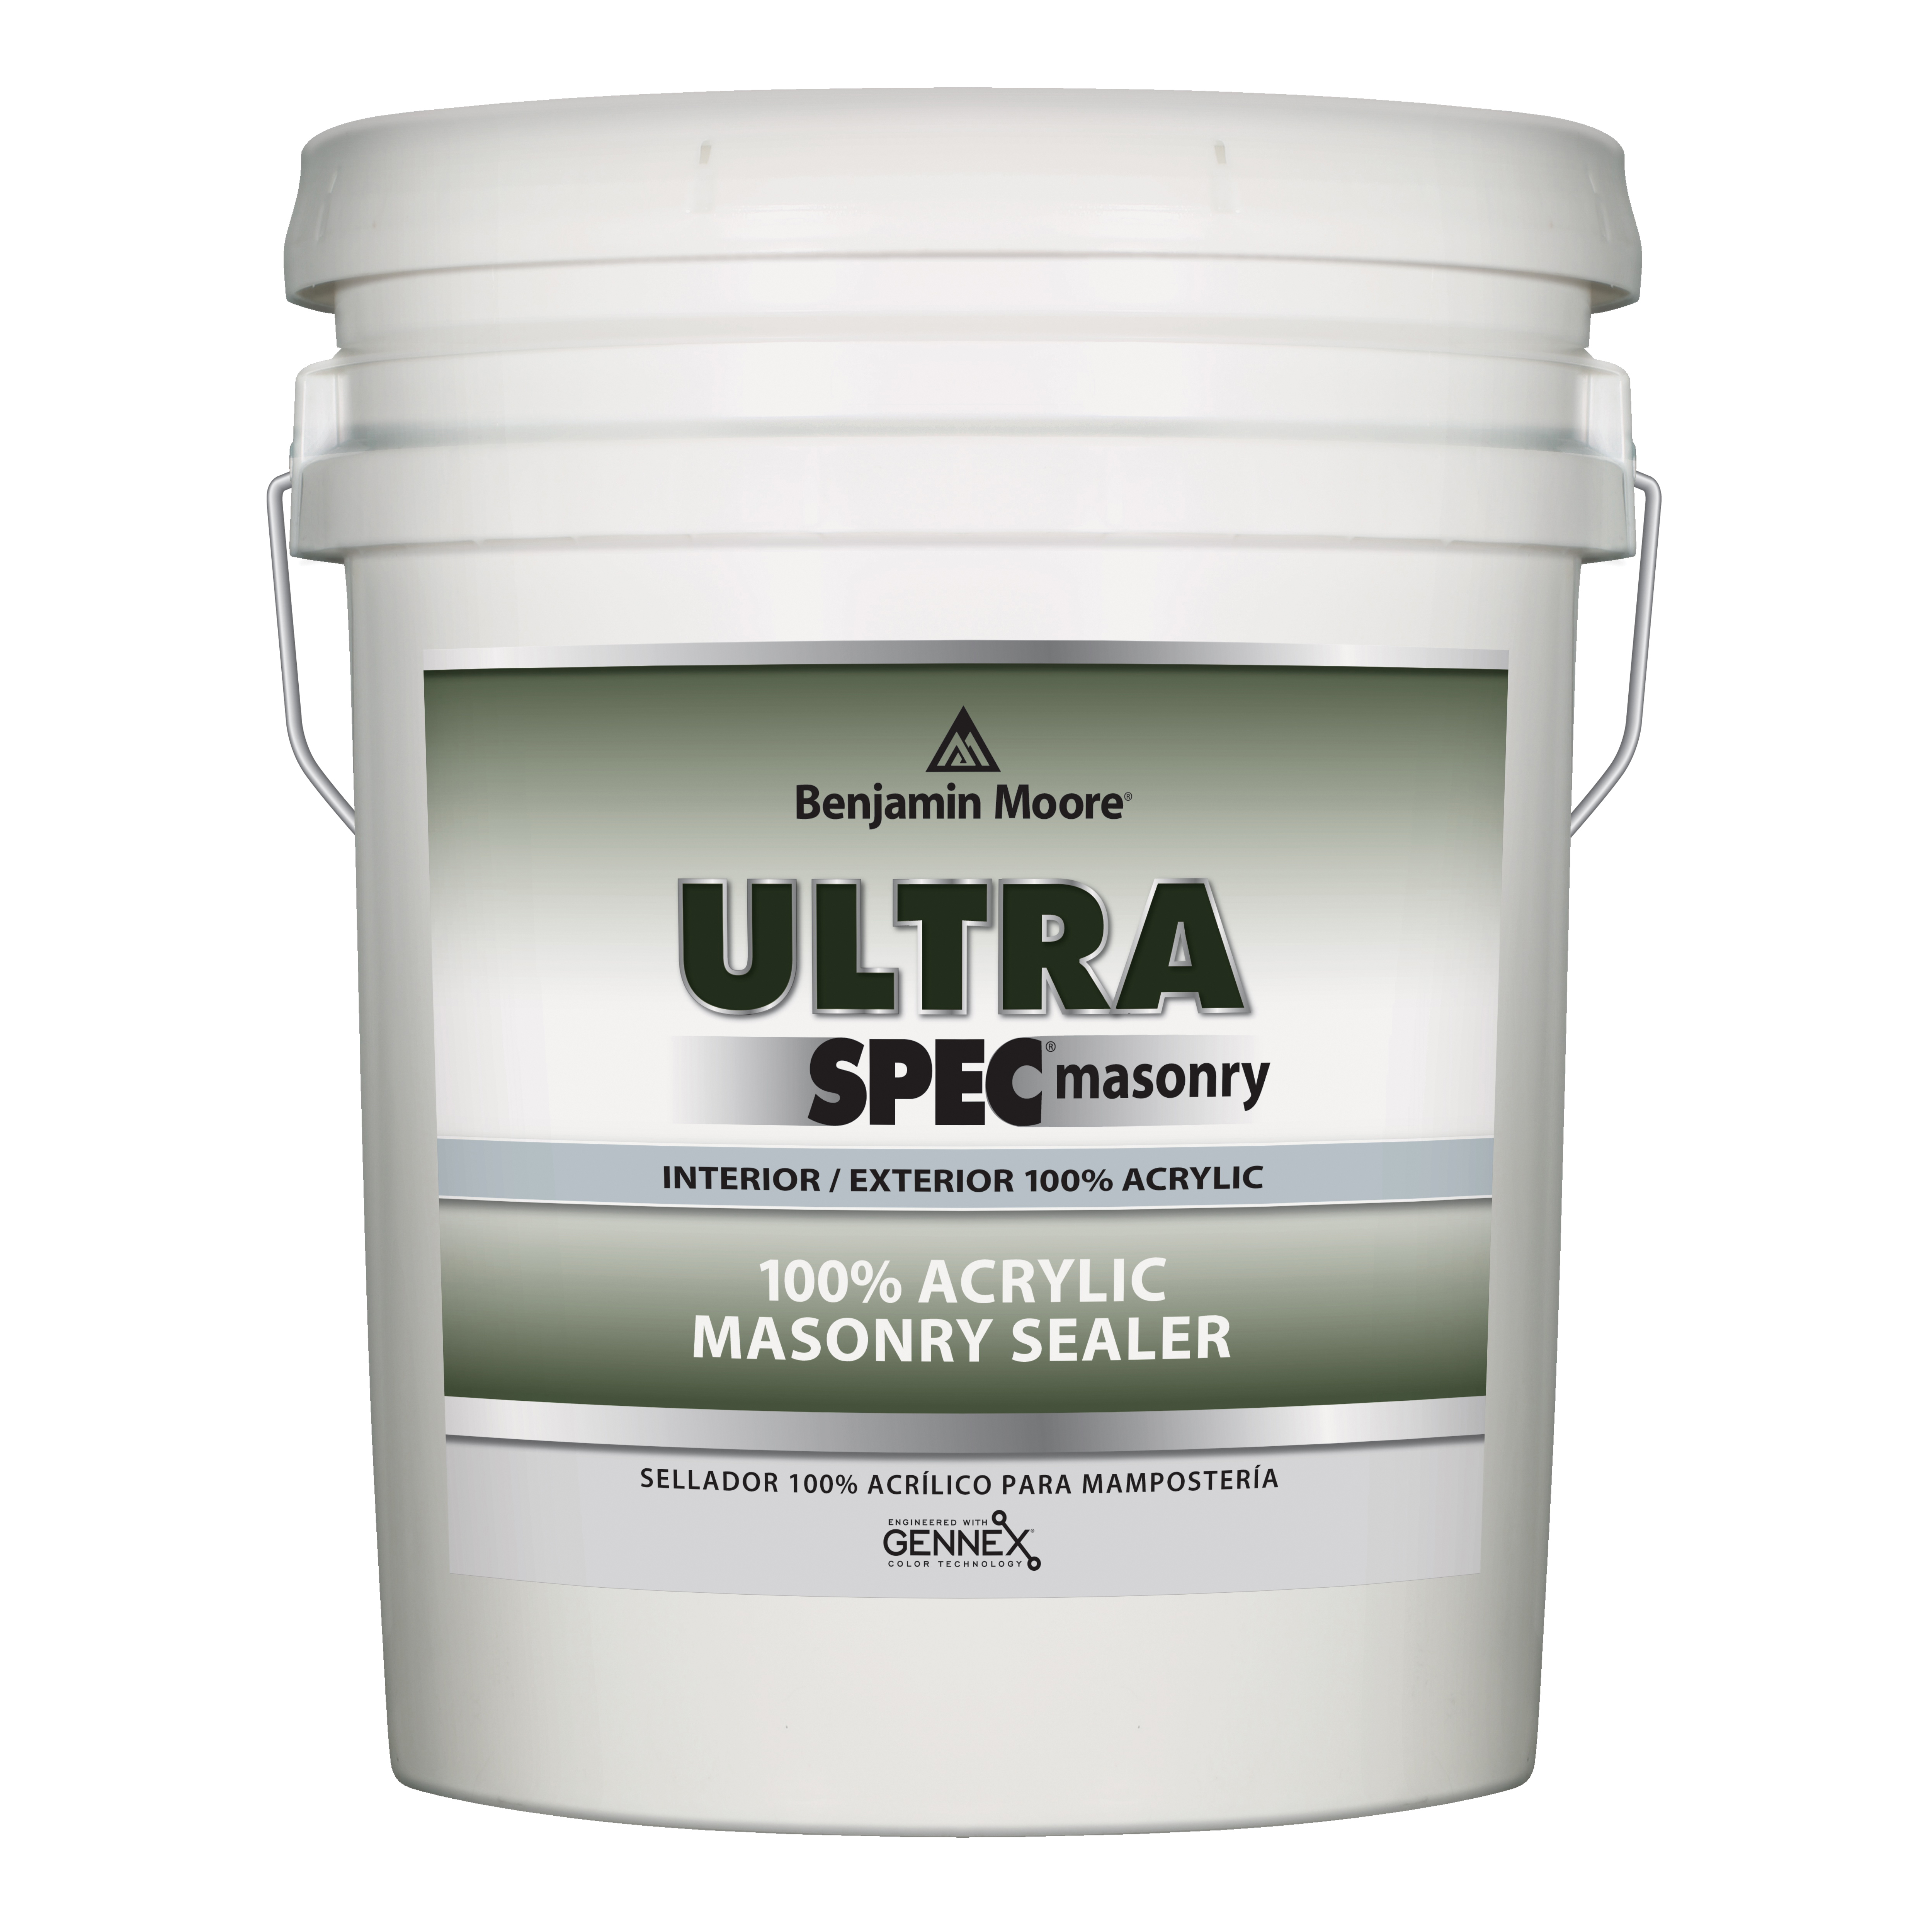 Picture of Benjamin Moore 060801-005 Masonry Sealer, White, Liquid, 5 gal Package, Can